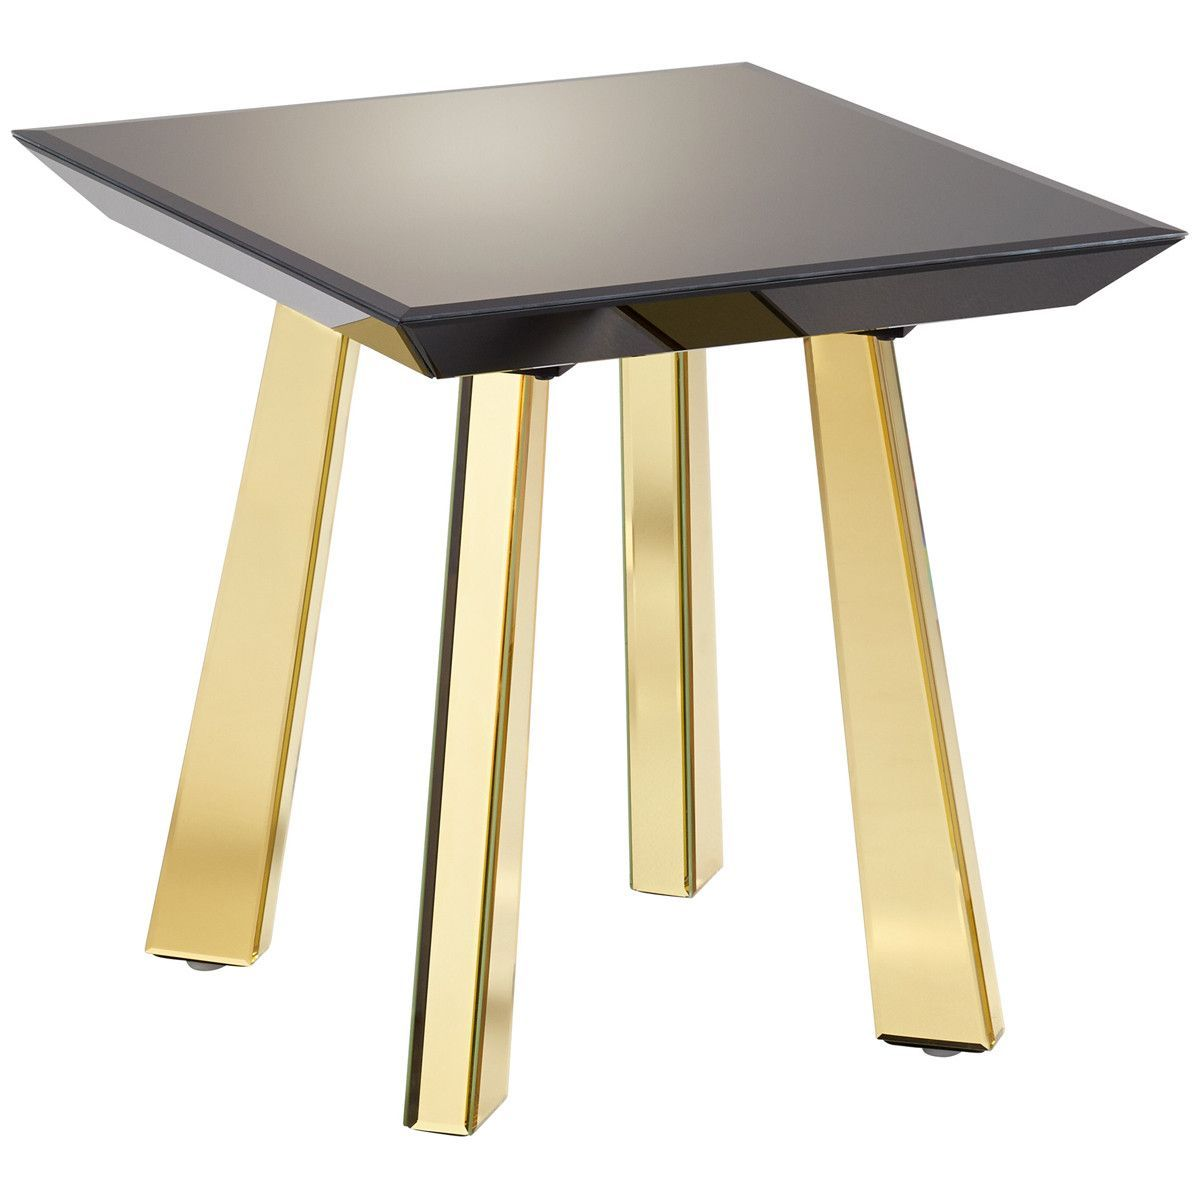 small design tables target hafley decor for shades room plus table lighting painting living accent tiffany ideas contemporary drum lamp mini color sma outdoor kijiji redmond end